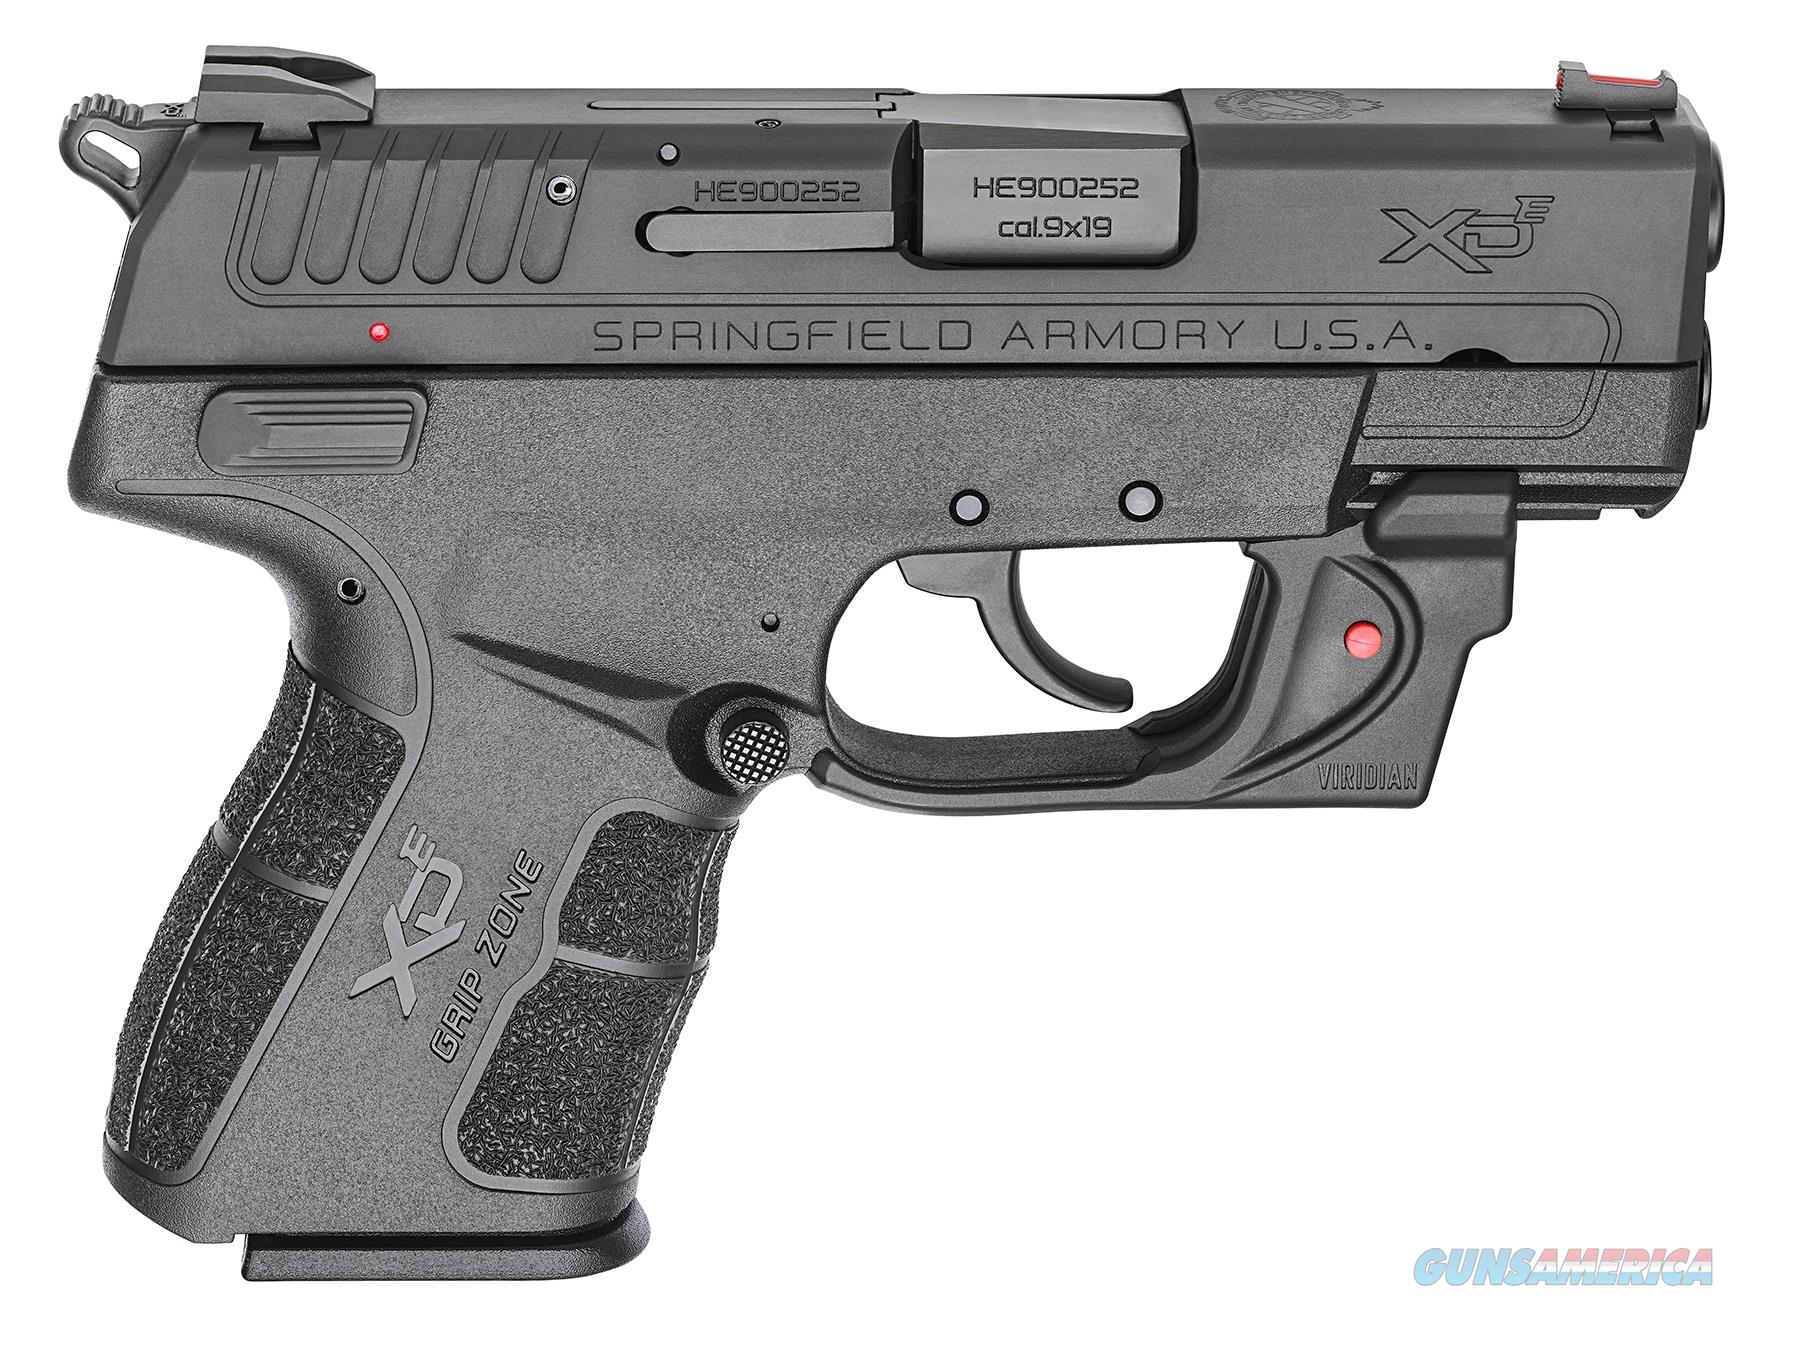 Springfield Armory XD-E 9MM BLK 3.3 9+1 RED LSR VIRIDIAN RED LASER   2 MAGS  Guns > Pistols > Springfield Armory Pistols > XD-E